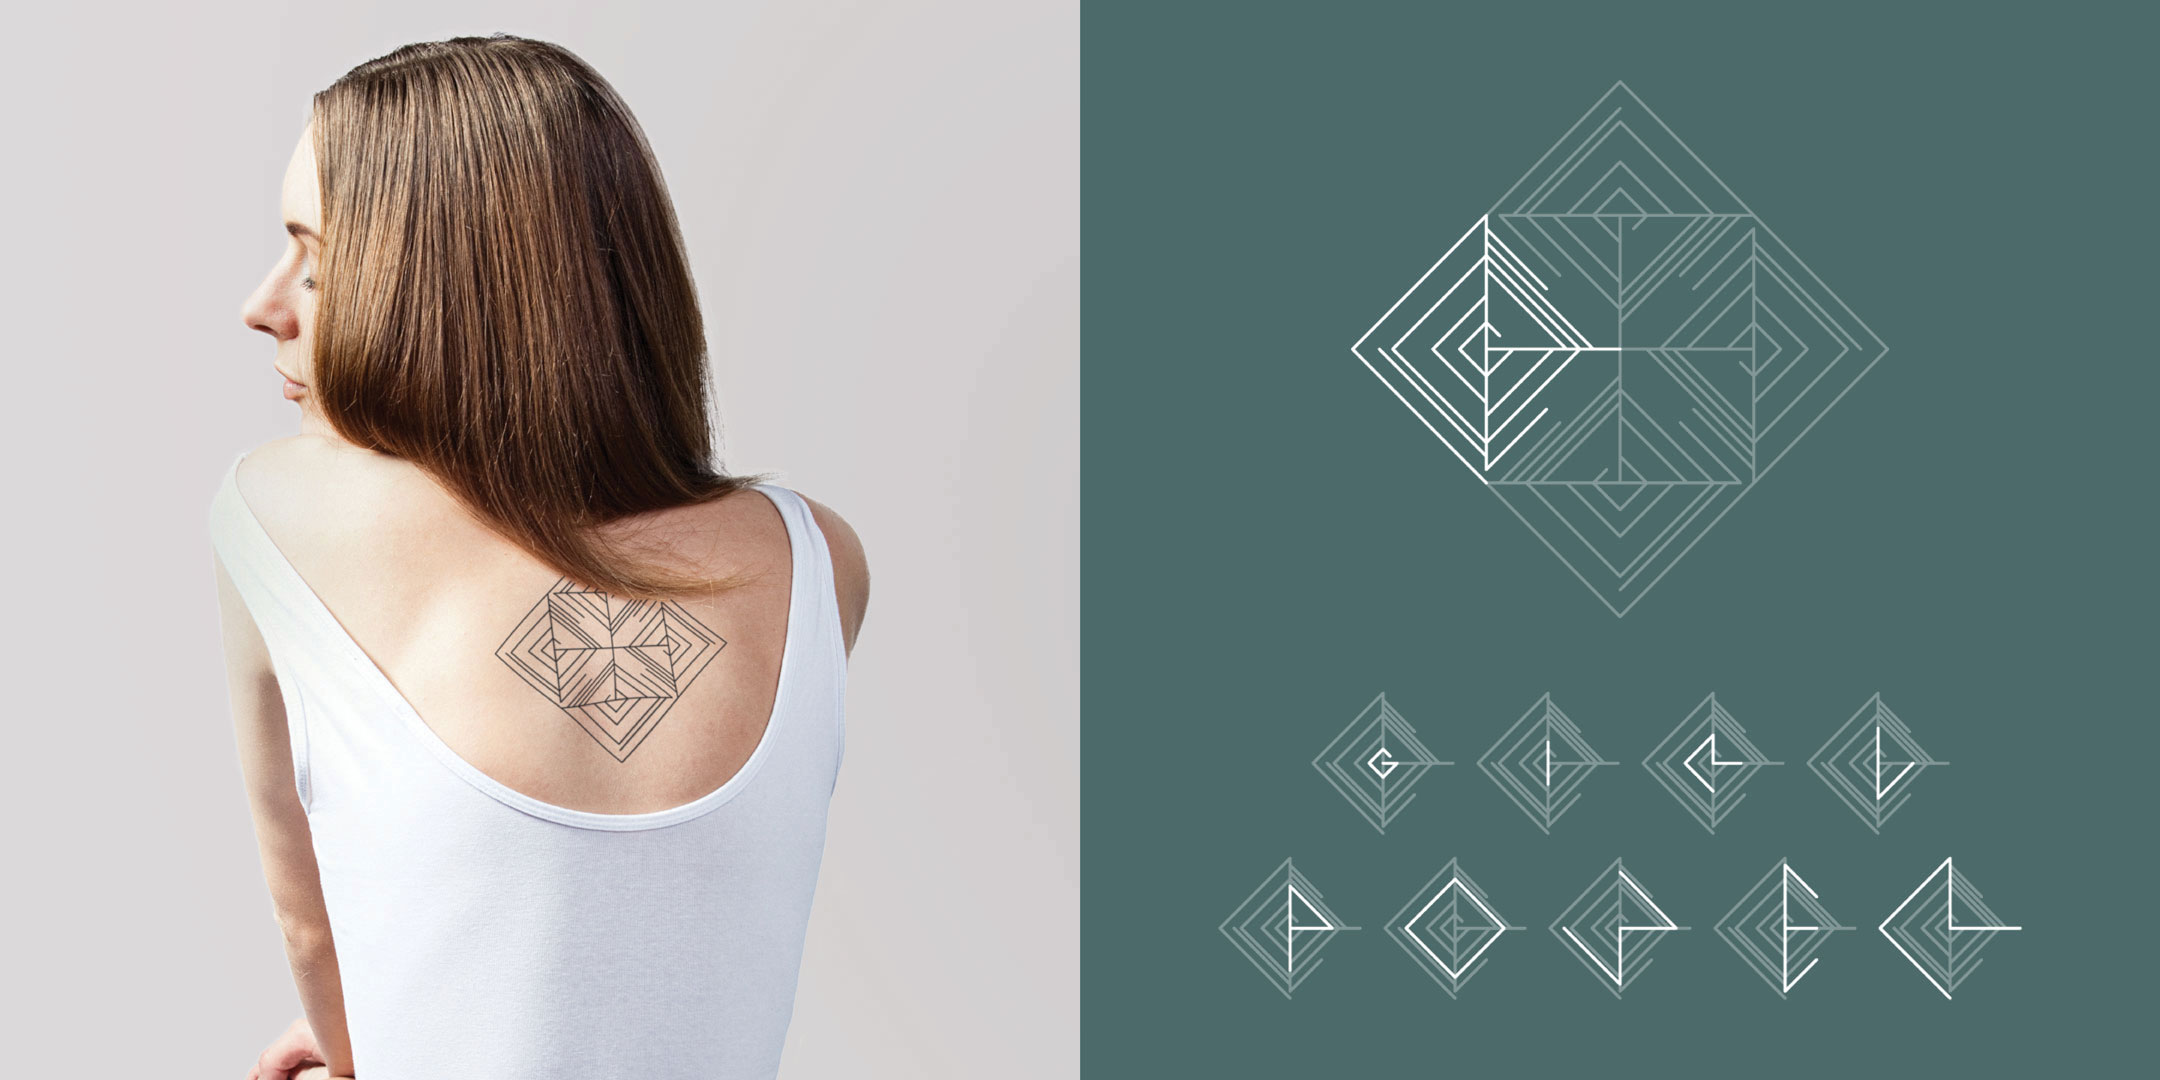 Tattoo with meaning Girl Power by Discreet Tattoos